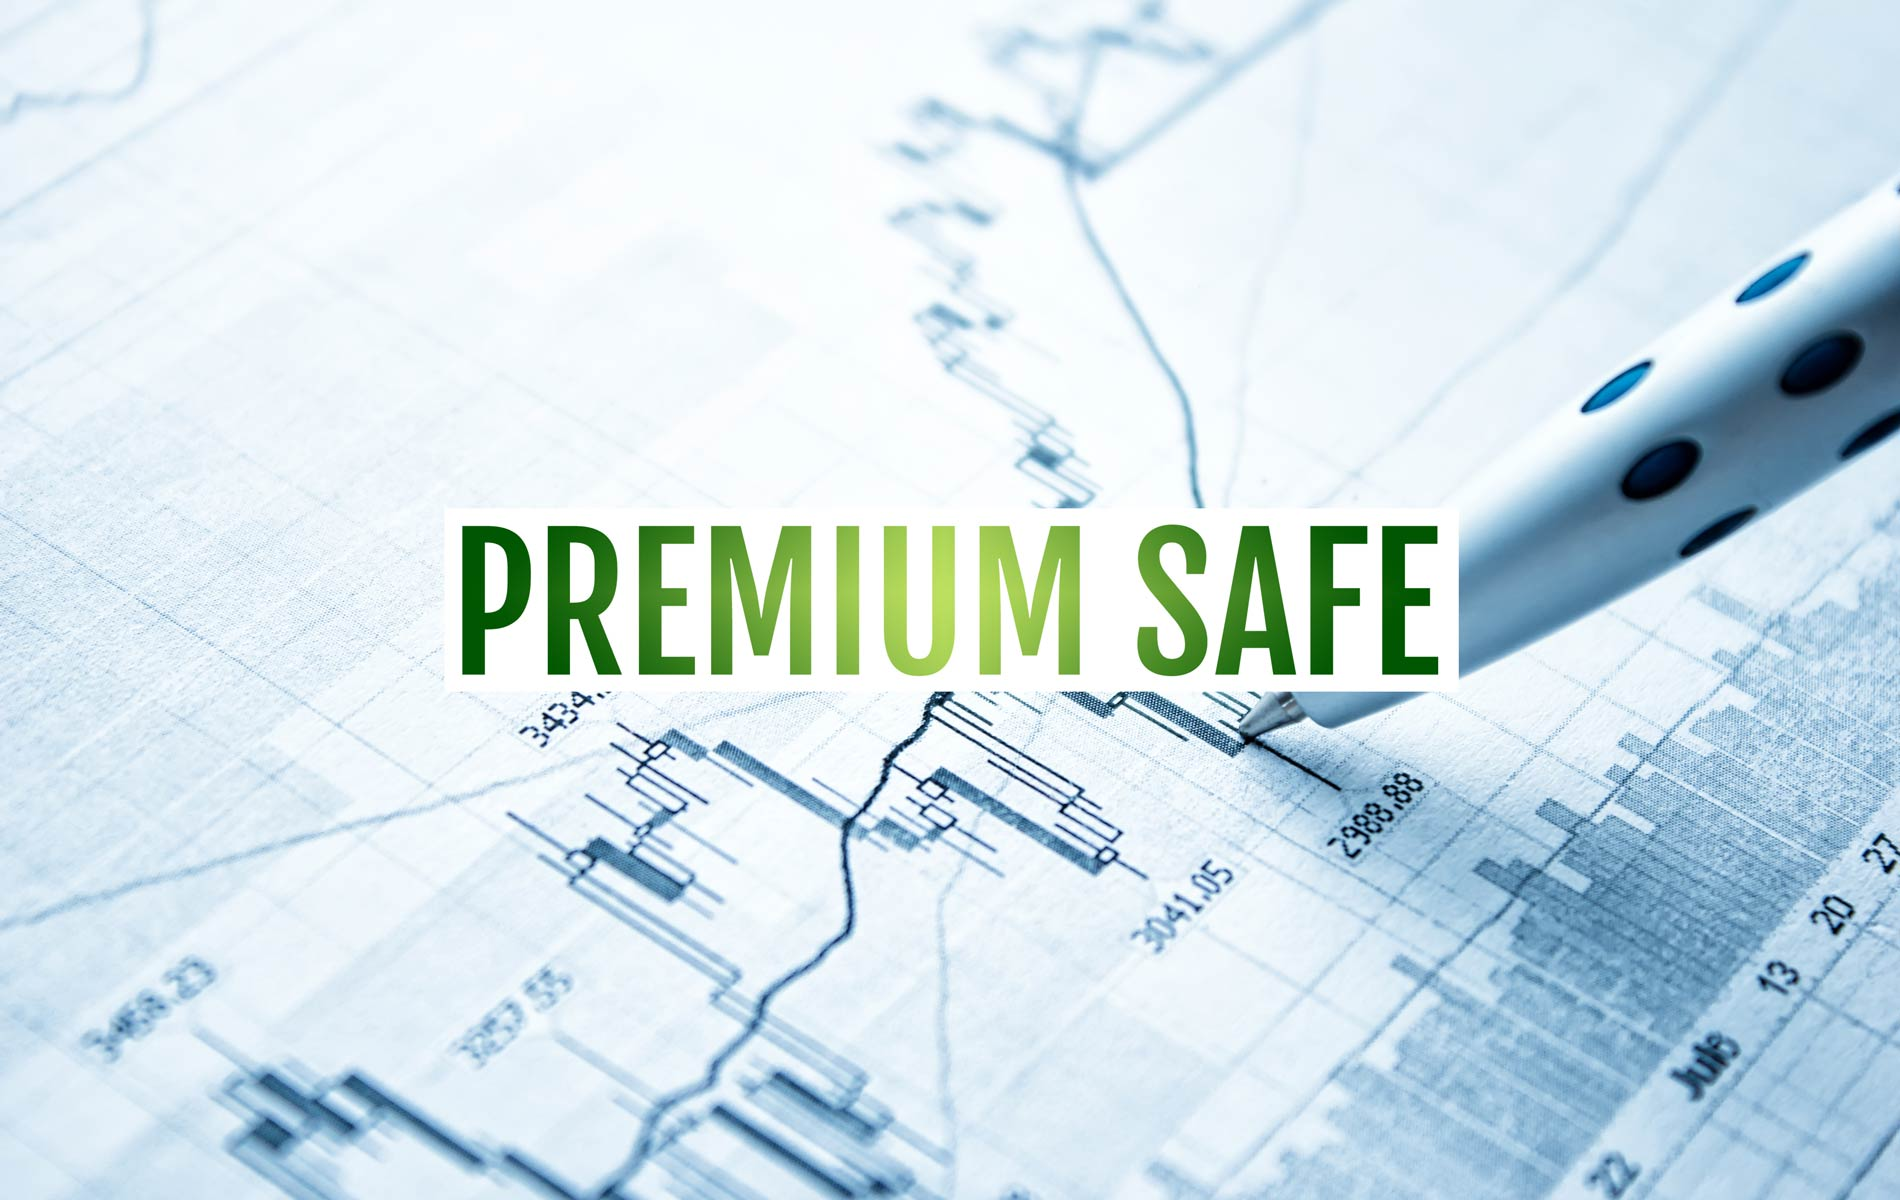 Premium Safe in der Krise